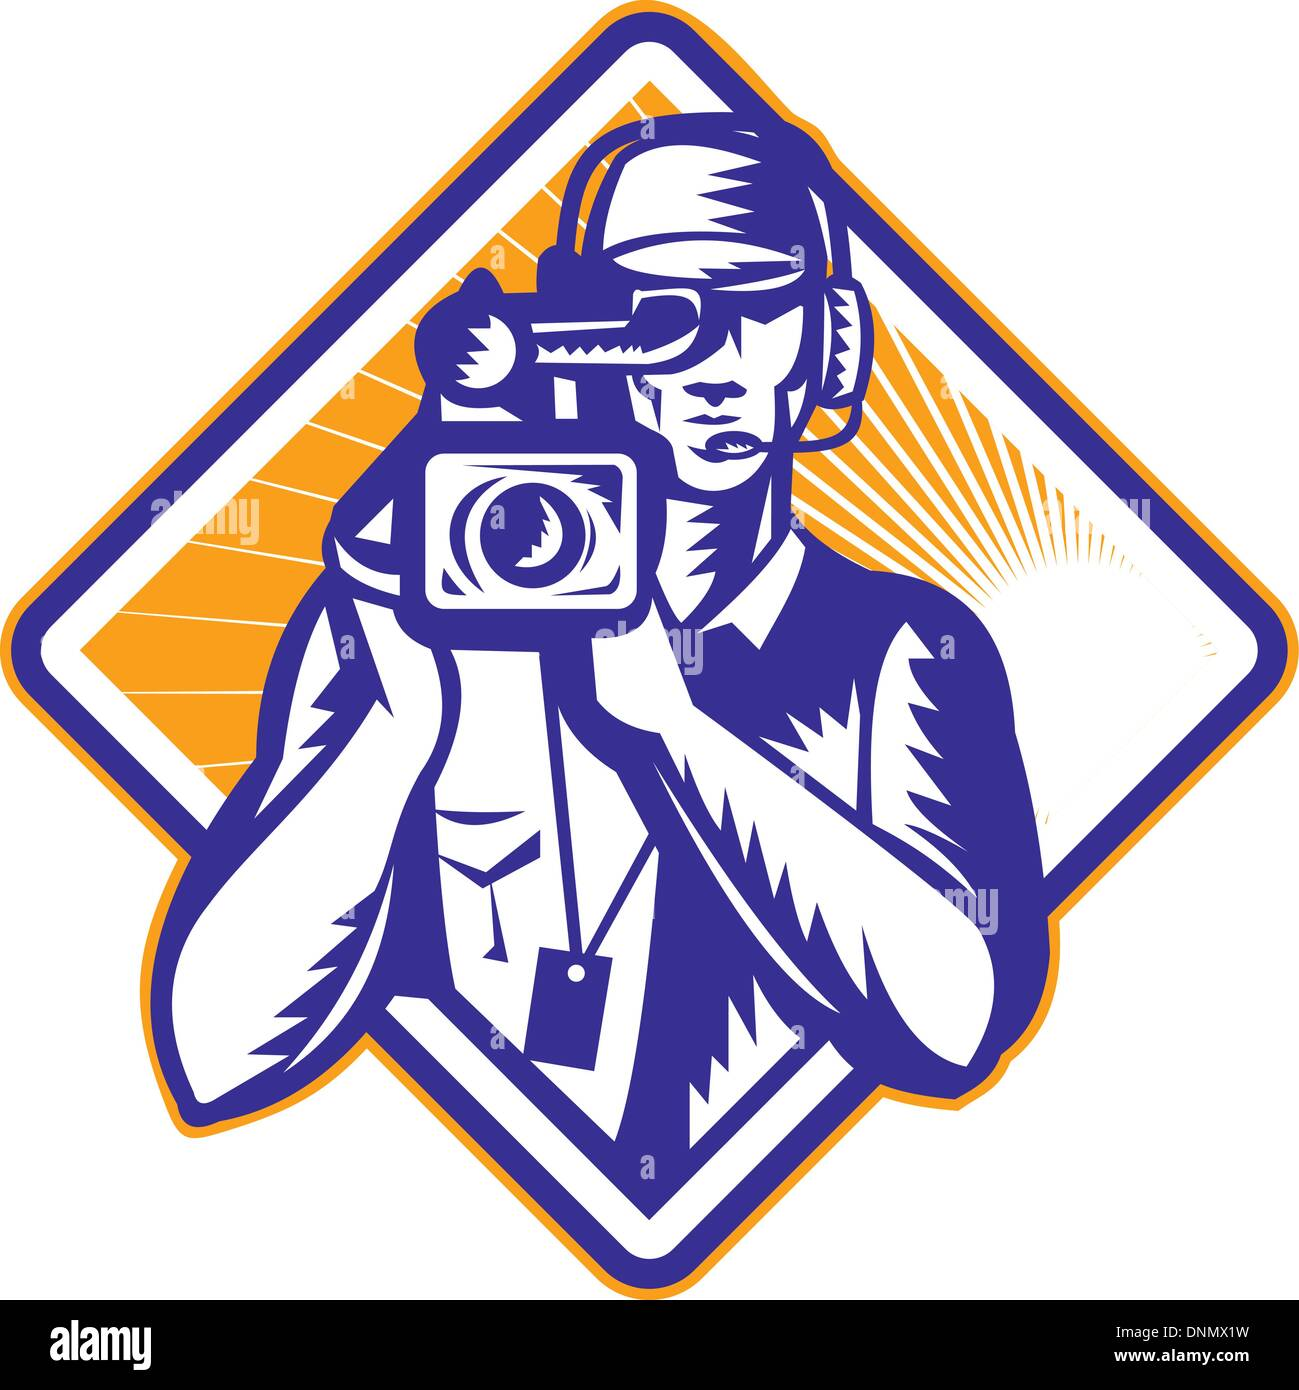 illustration of a film crew cameraman with video camera facing front done in retro woodcut style set inside diamond shape